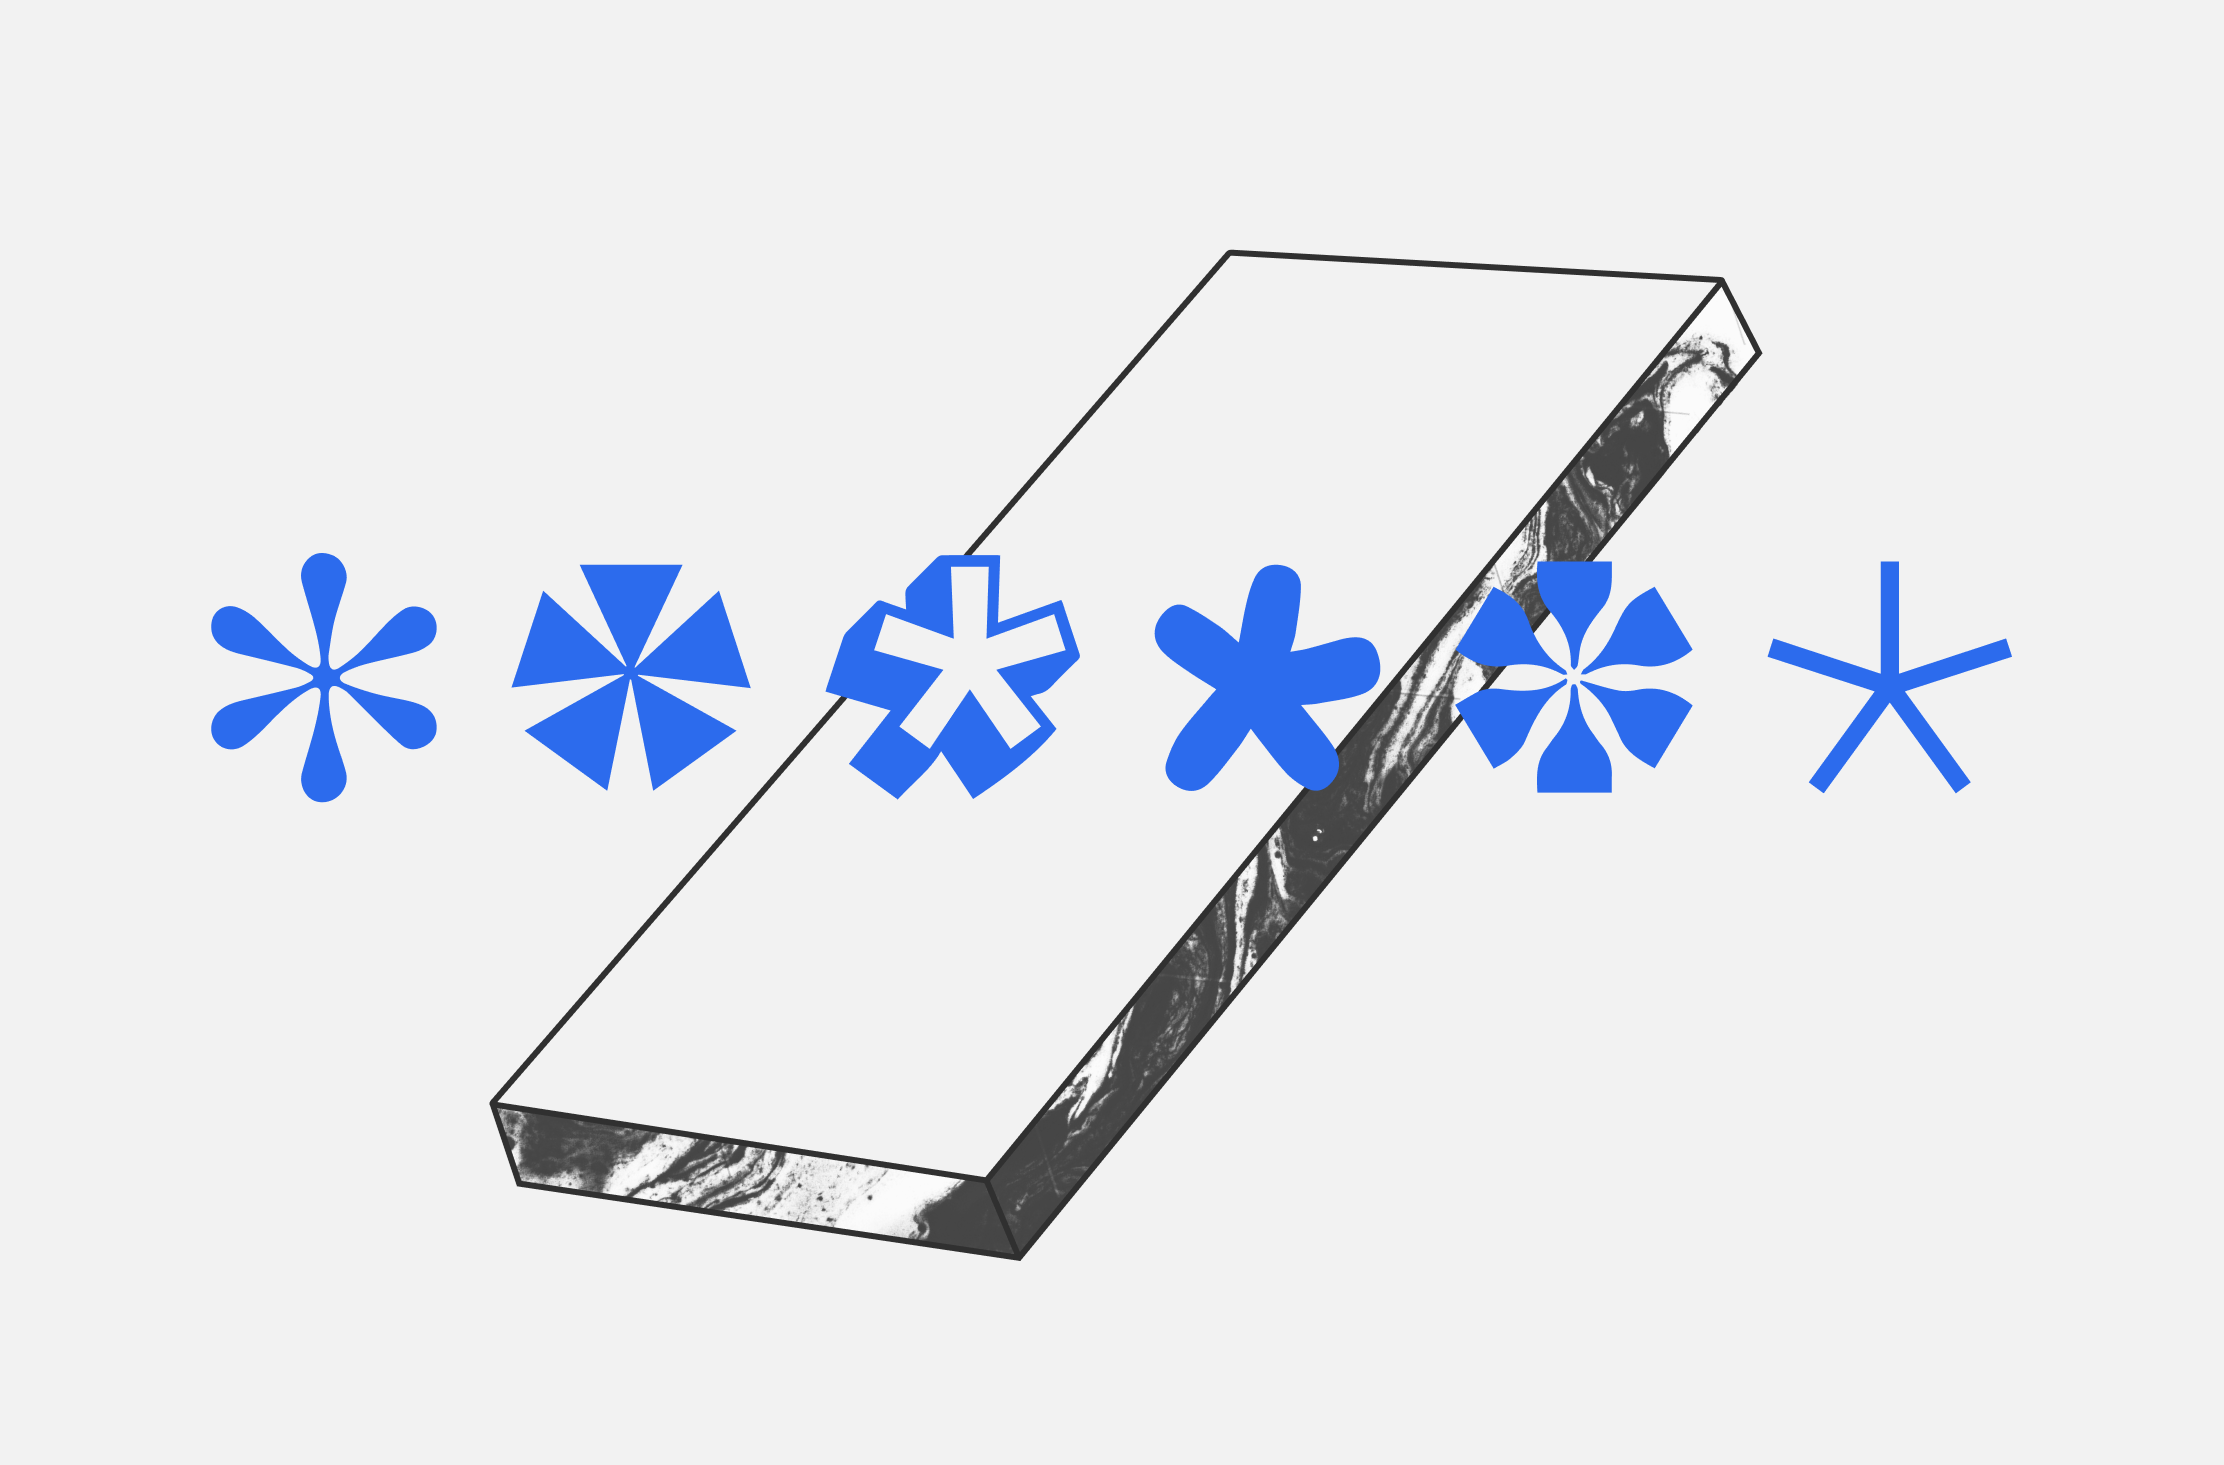 An illustration of asterisks superimposed over the shape of a smartphone.